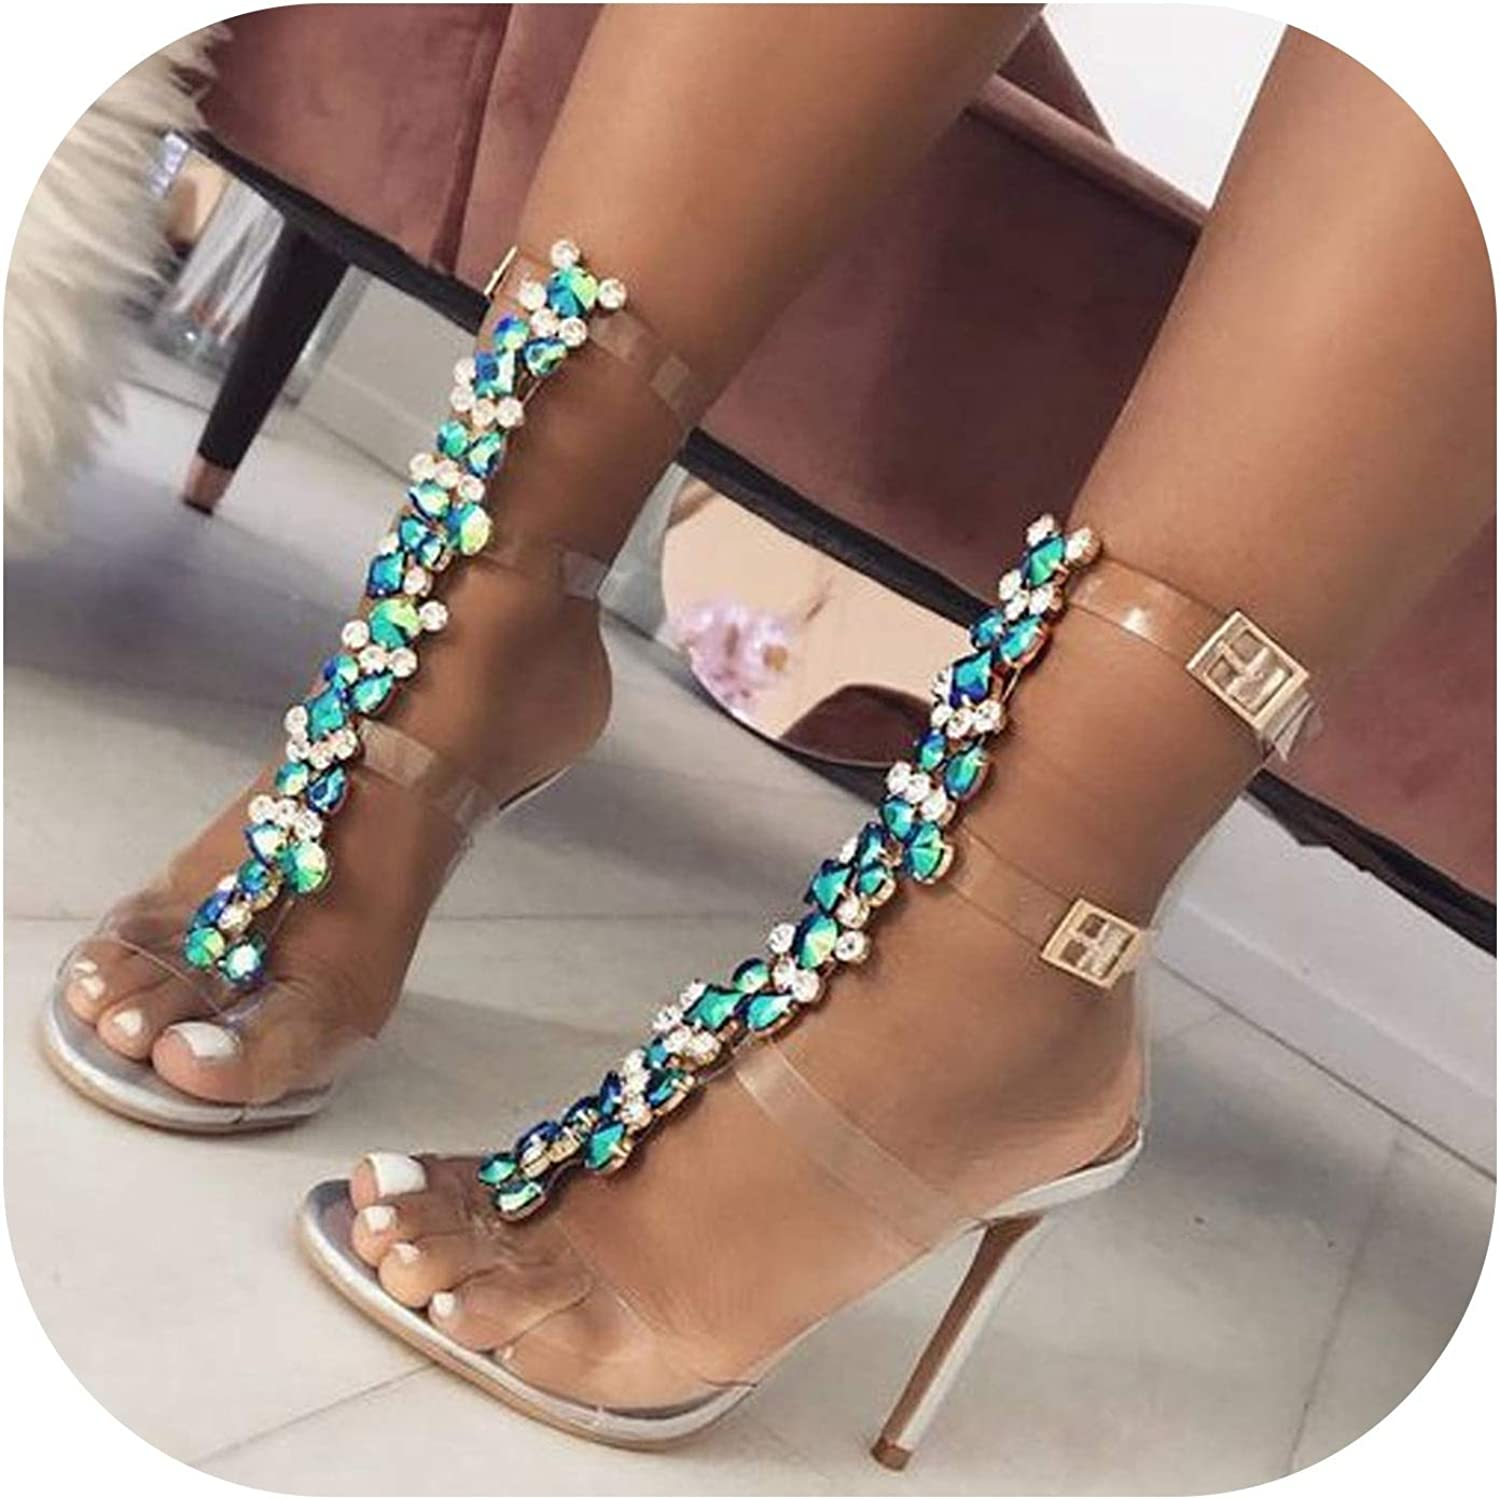 Summer Sandals Women Buckle Strap Luxury Crystal Chain T-Strap High Heel Open Toe Sexy Sandals shoes